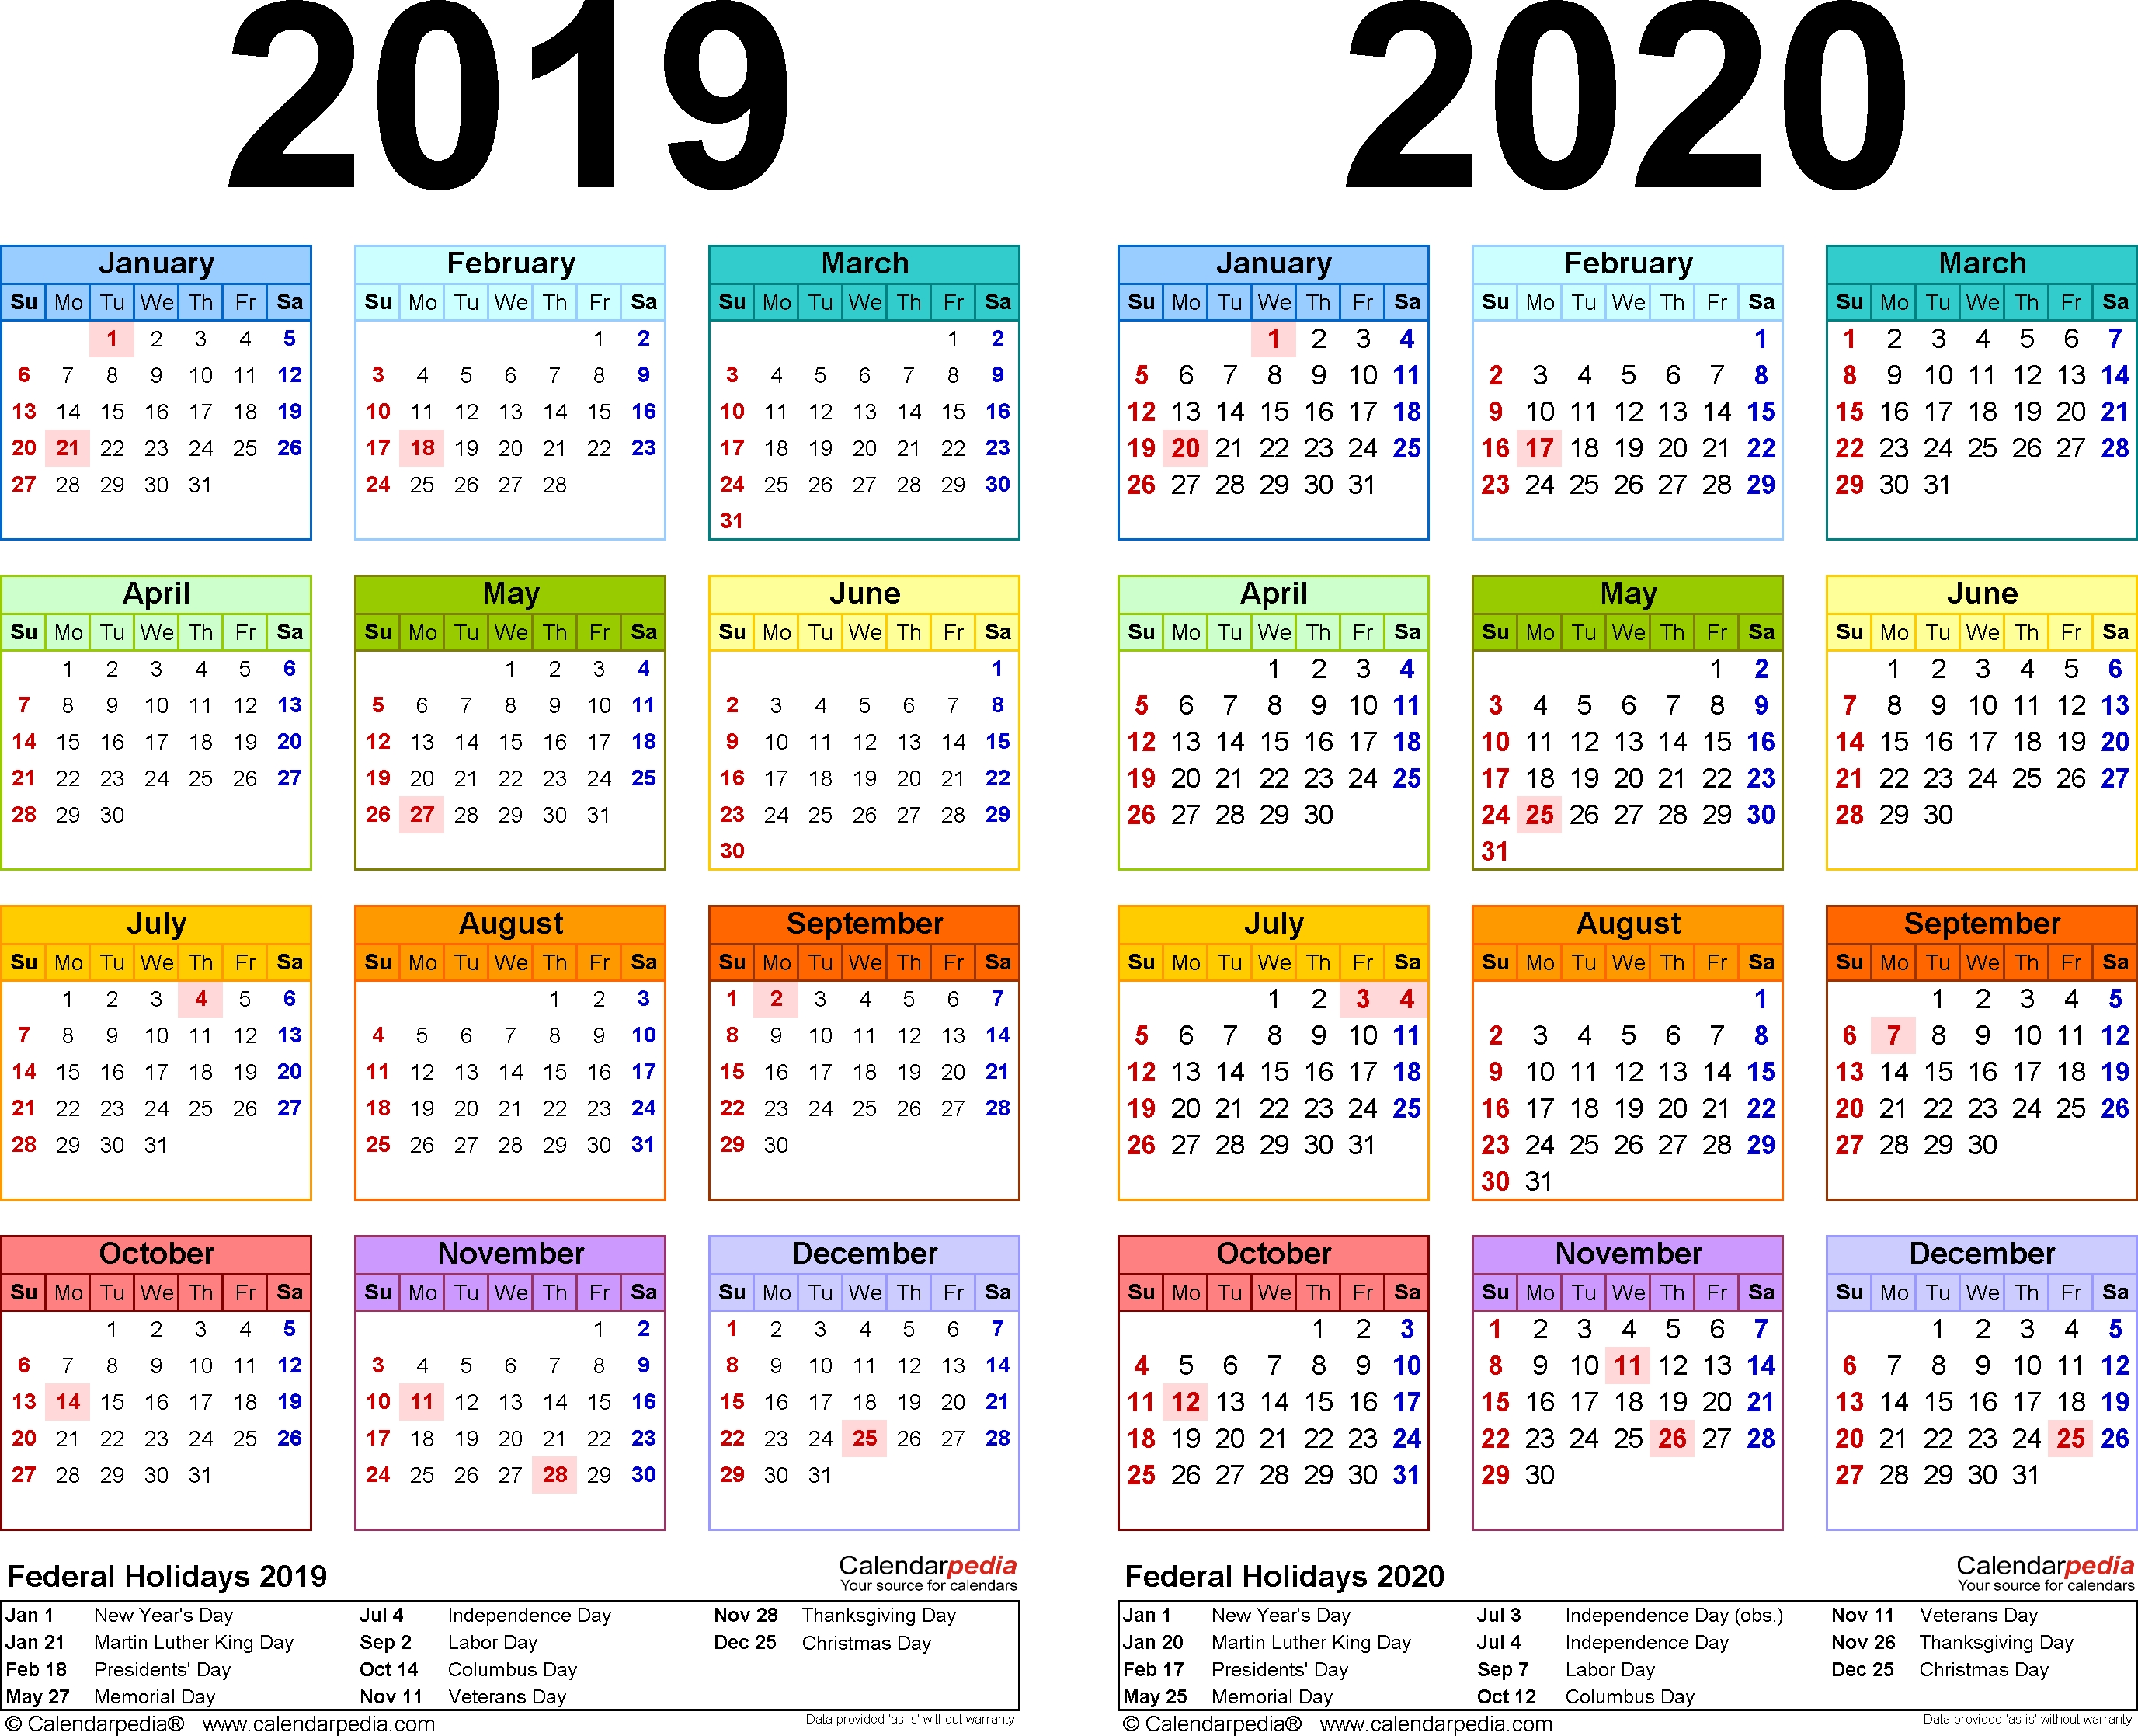 2019-2020 Calendar - Free Printable Two-Year Excel Calendars for U Of M Calander 2019-2020